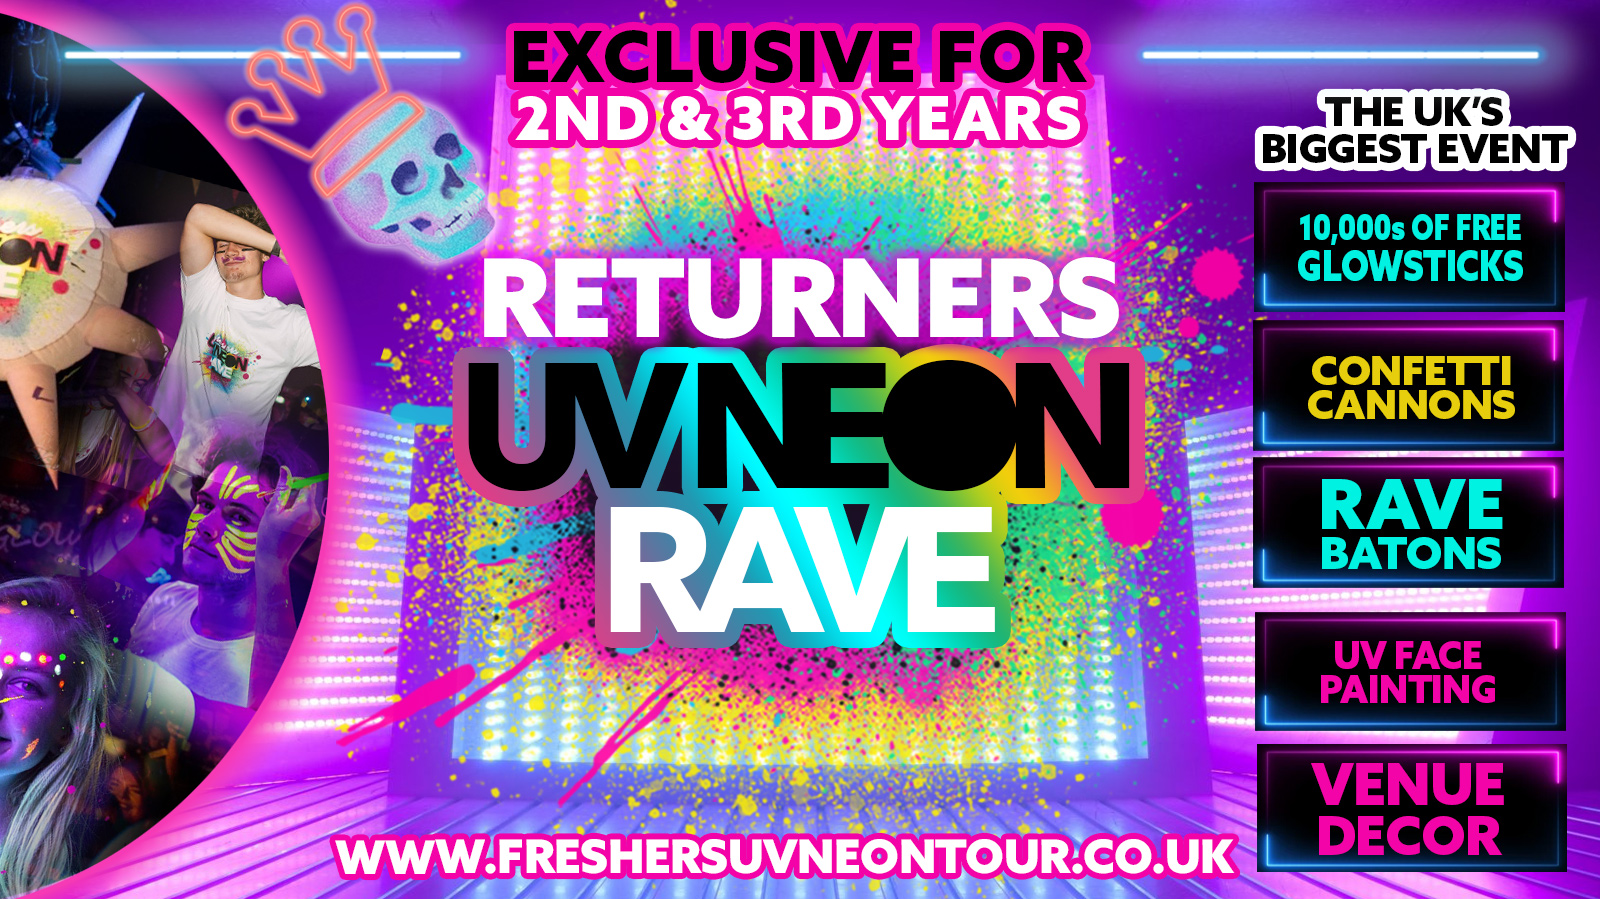 Swansea Returners UV Neon Rave | Exclusive for 2nd & 3rd Years